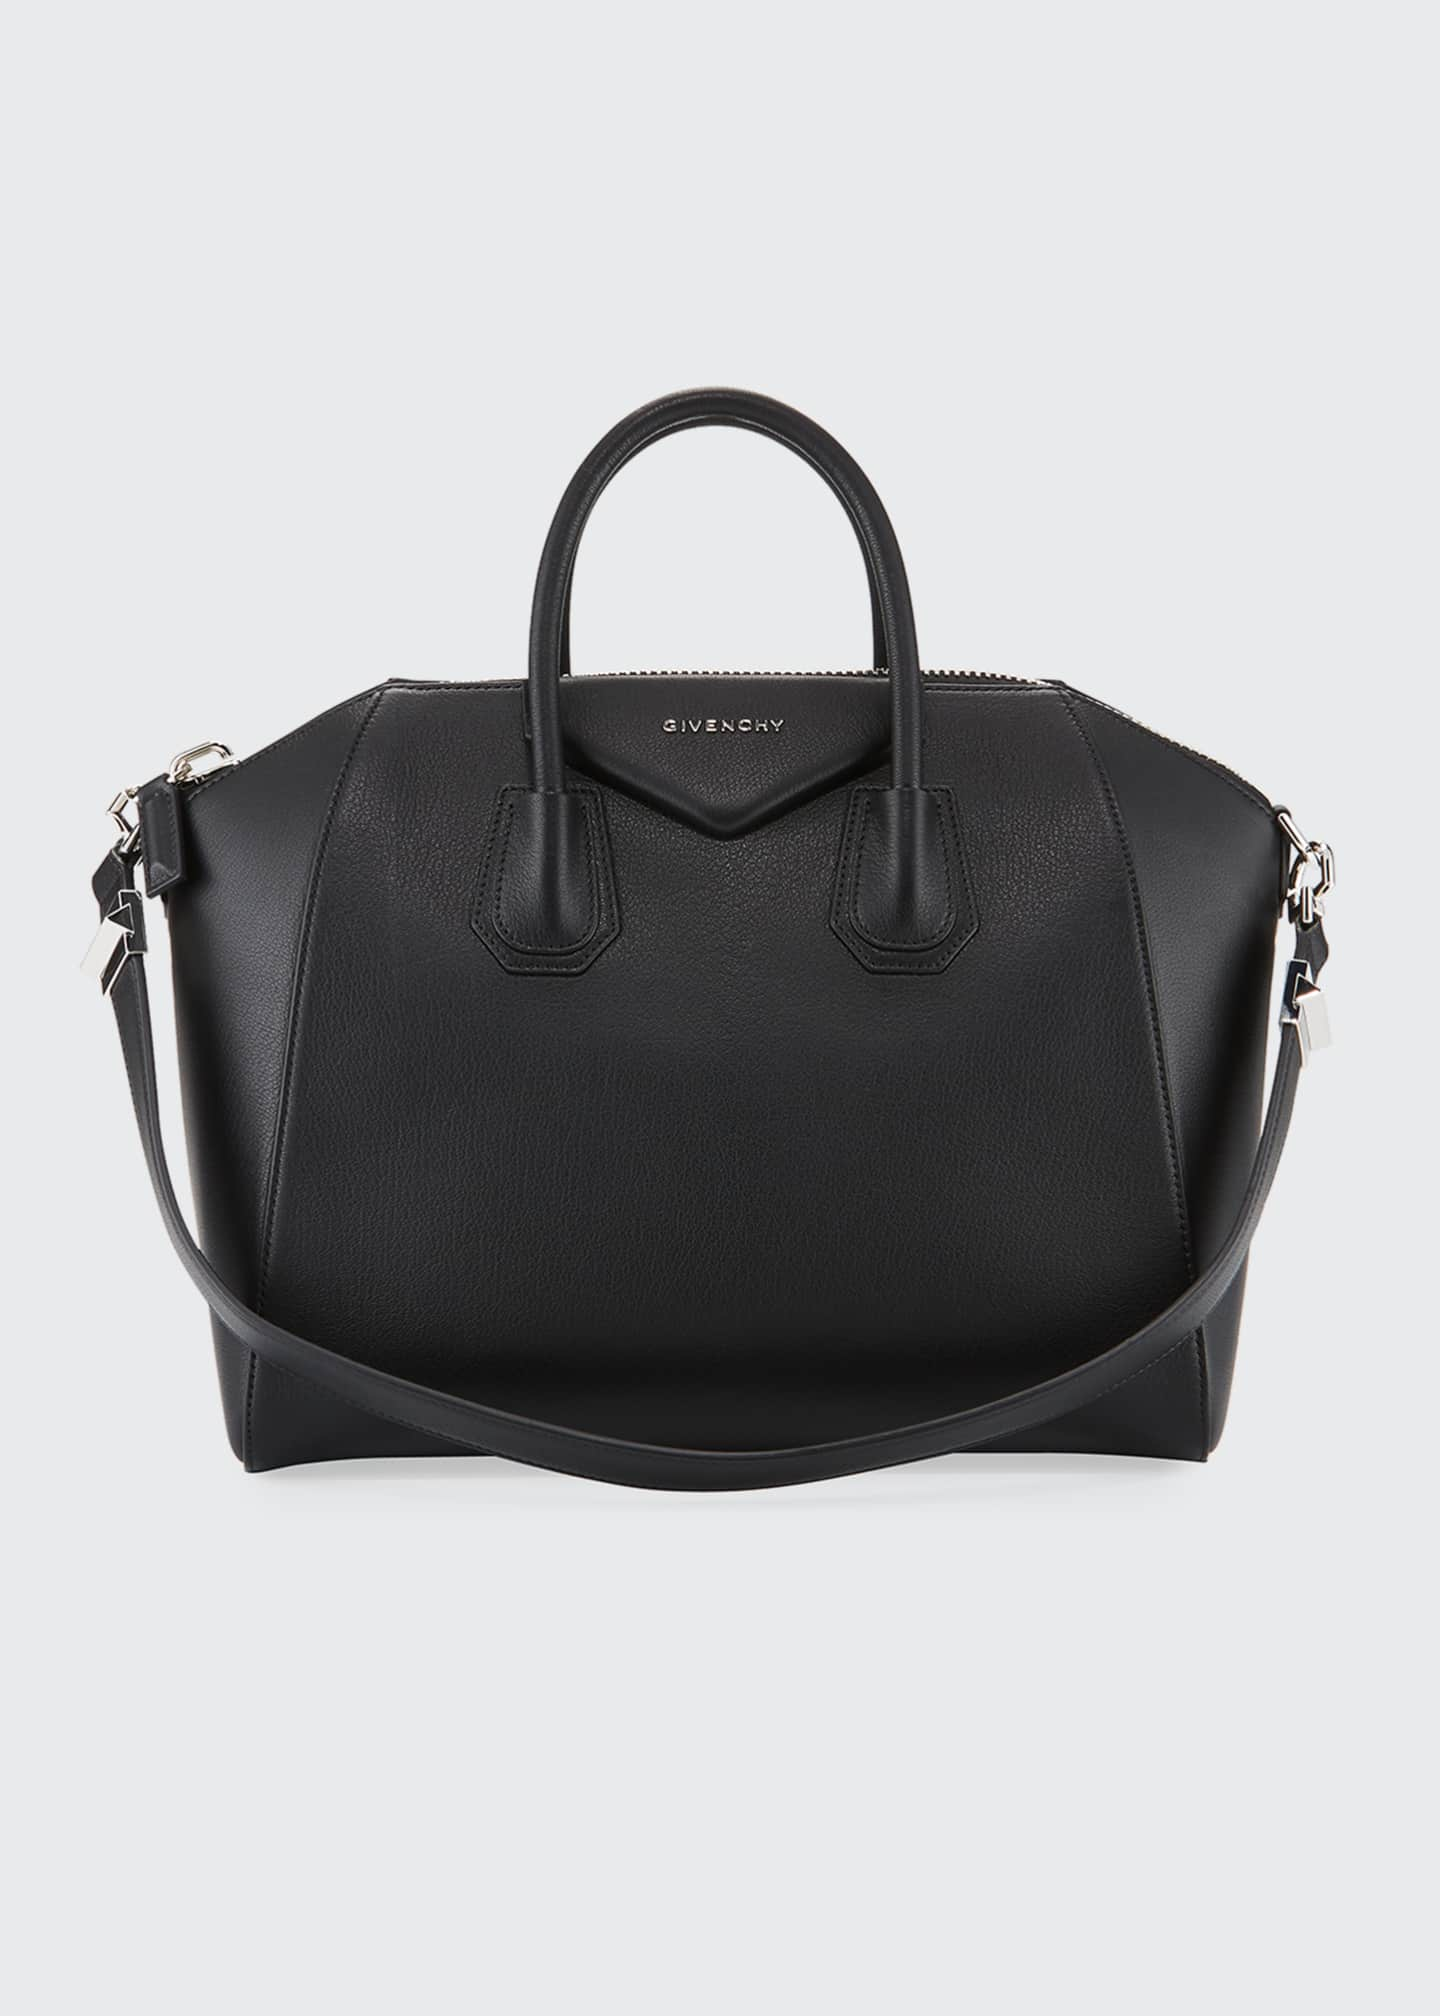 Givenchy Antigona Medium Sugar Goatskin Satchel Bag